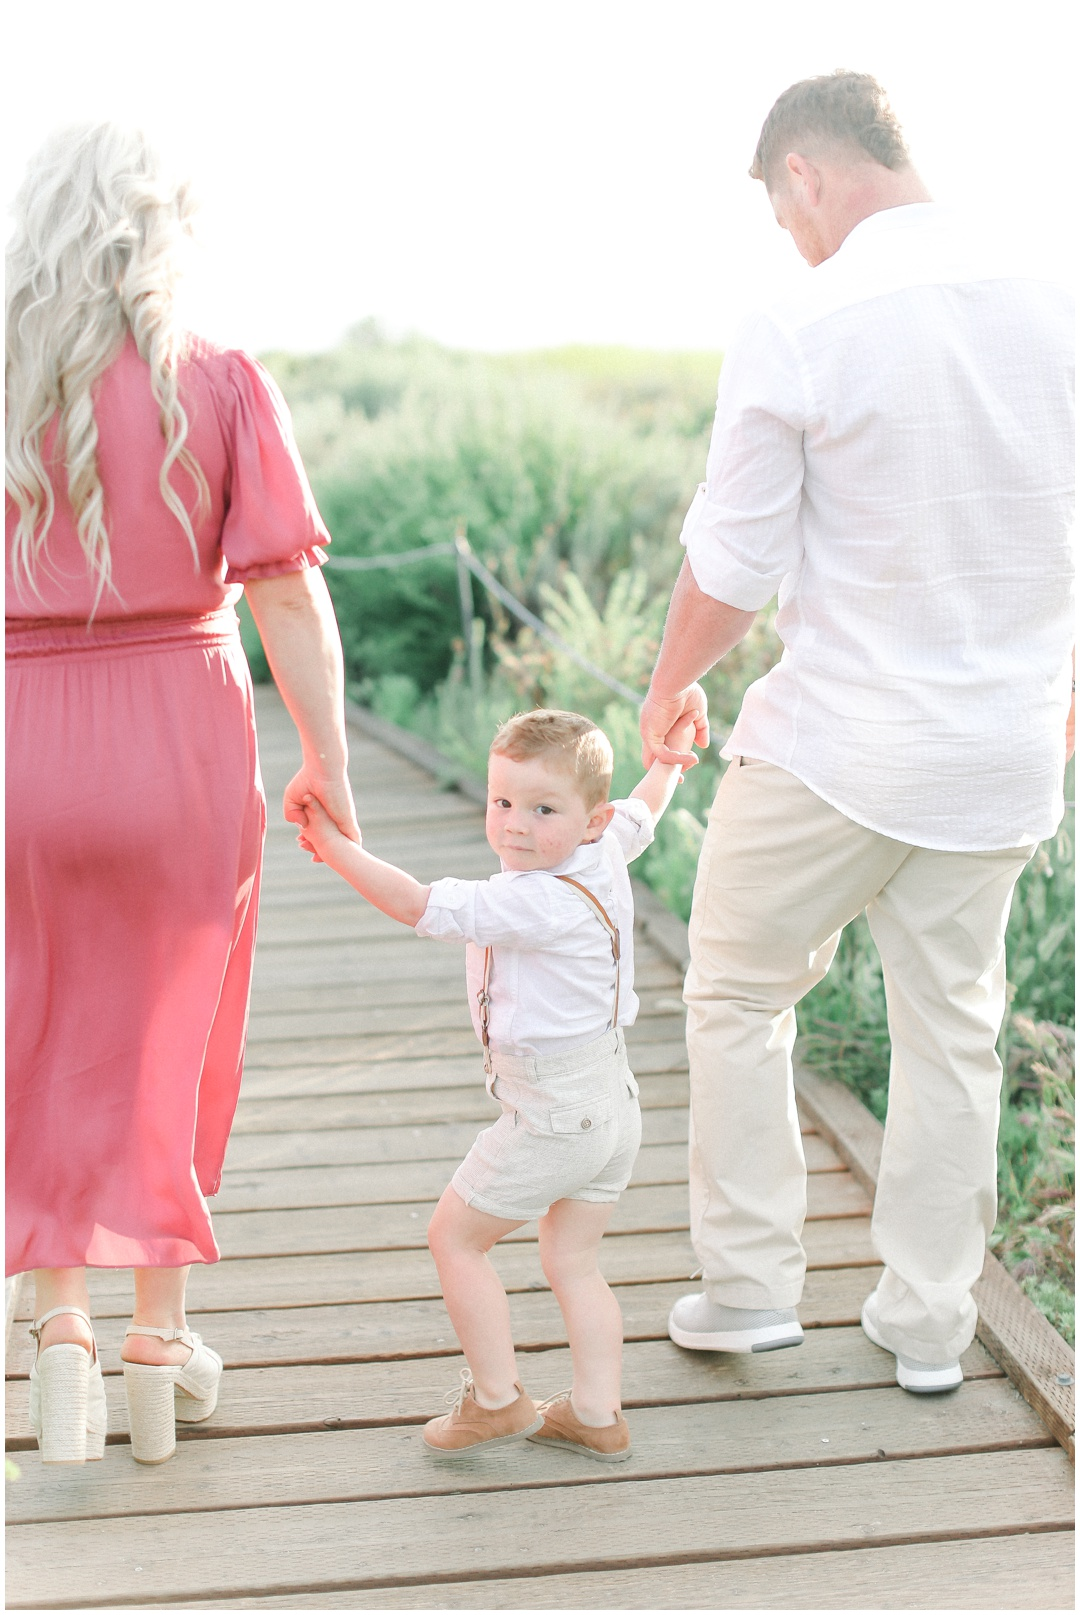 Newport_Beach_Newborn_Light_Airy_Natural_Photographer_Newport_Beach_Photographer_Orange_County_Family_Photographer_Cori_Kleckner_Photography_Newport_Beach_Photographer_Maternity_kole_calhoun56_kole_calhoun_Jennifer_Calhoun_Knox_Calhoun_3751.jpg